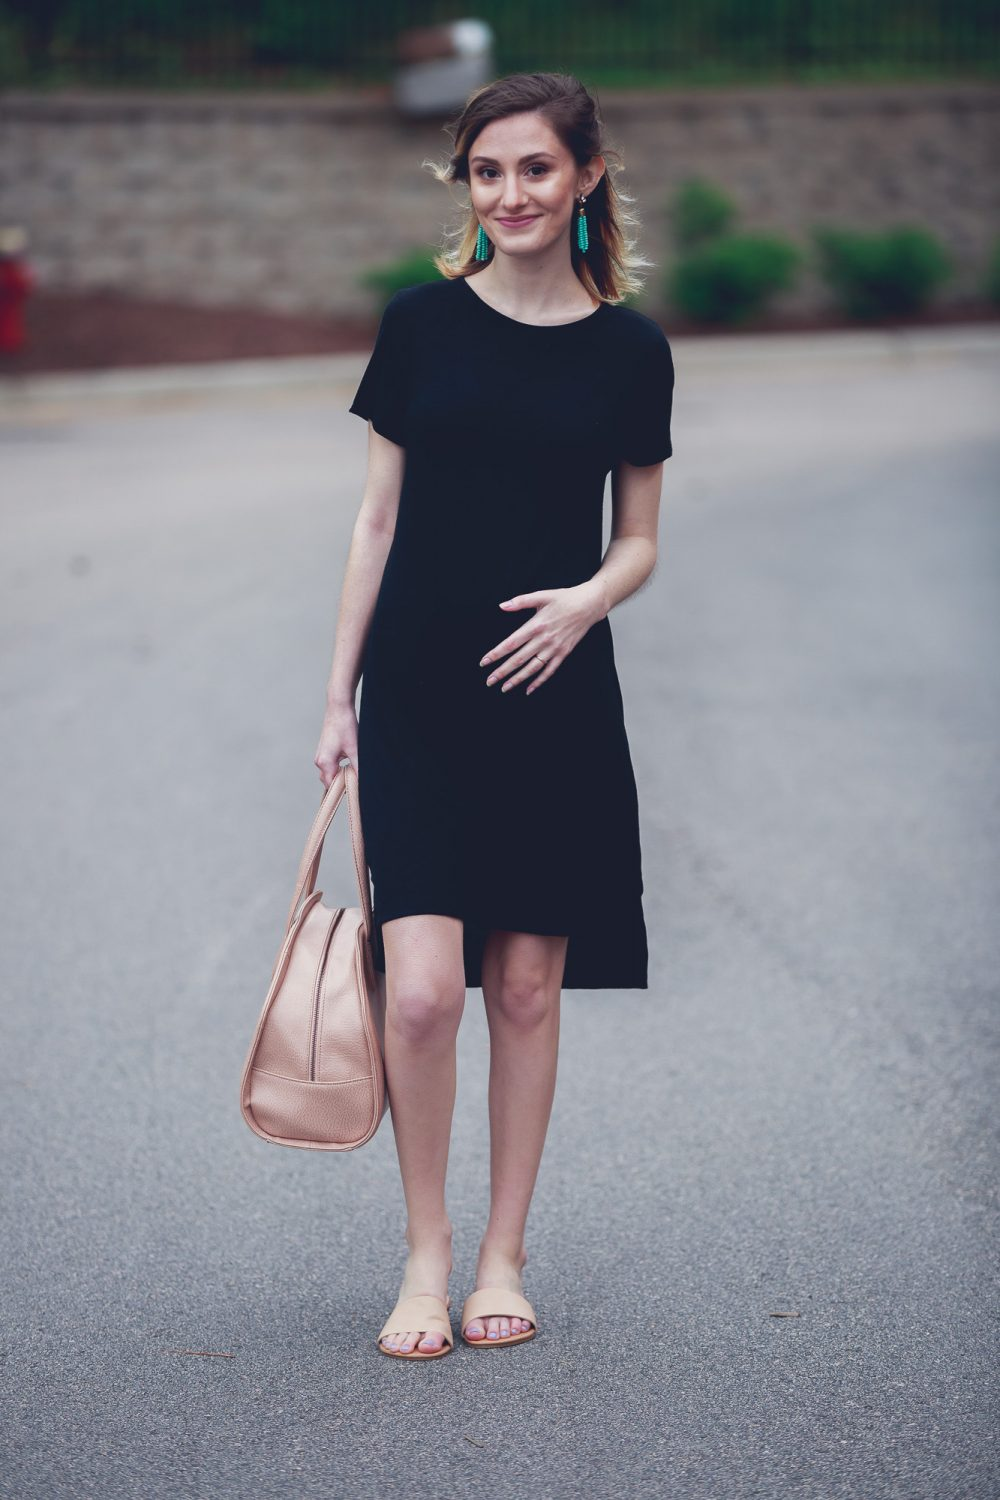 T-Shirt Dress With a Pop of Turquoise